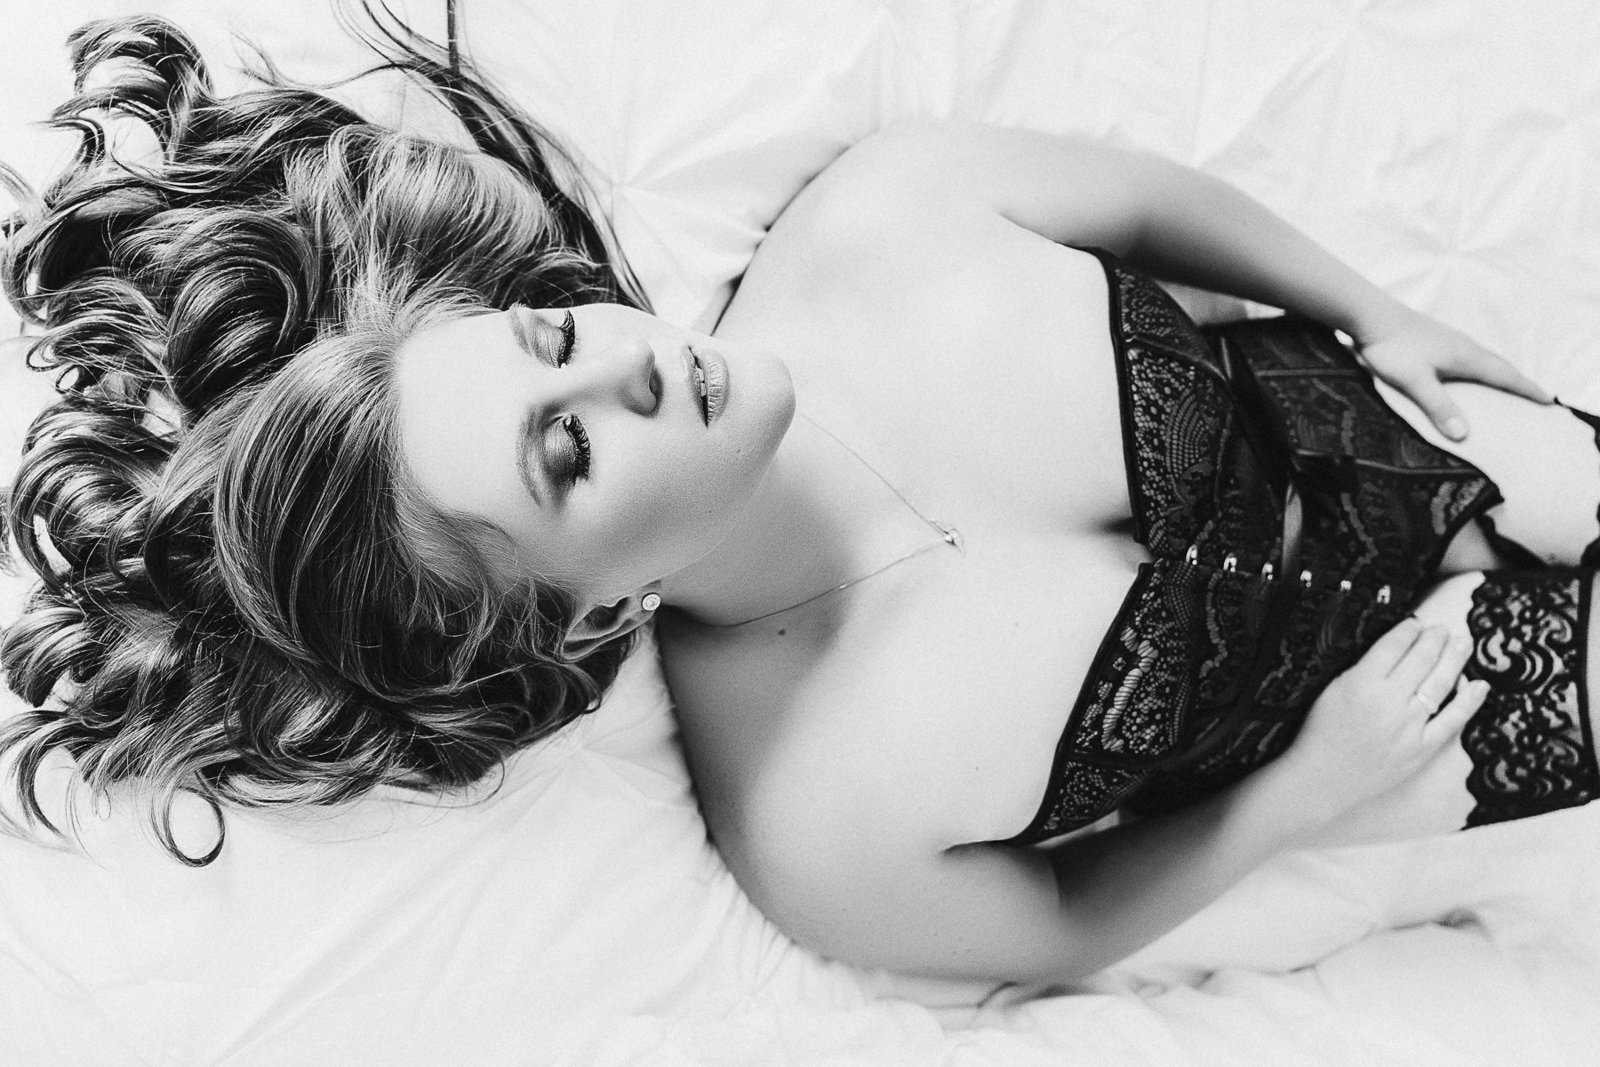 boudoir-photography-nashville-lovewell-022-2 - Copy